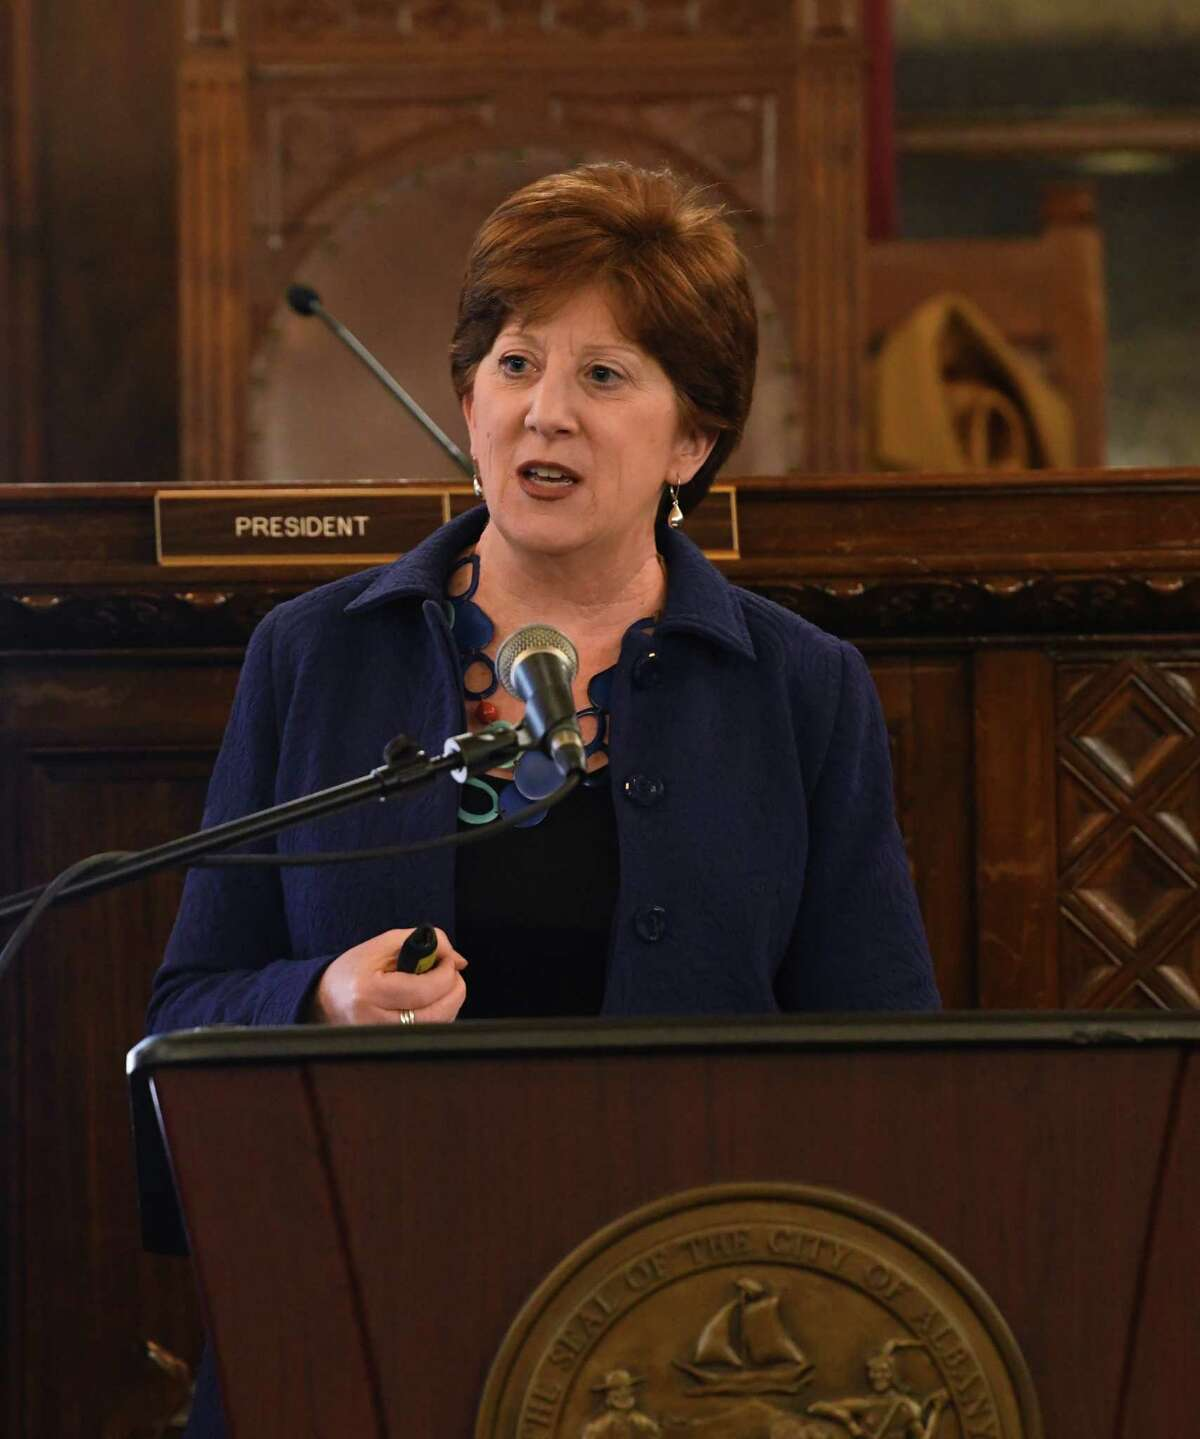 Albany Mayor Kathy Sheehan presents her State of the City Address to the Albany Common Council at Albany City Hall on Wednesday, Jan. 29, 2020 in Albany, N.Y. (Lori Van Buren/Times Union)